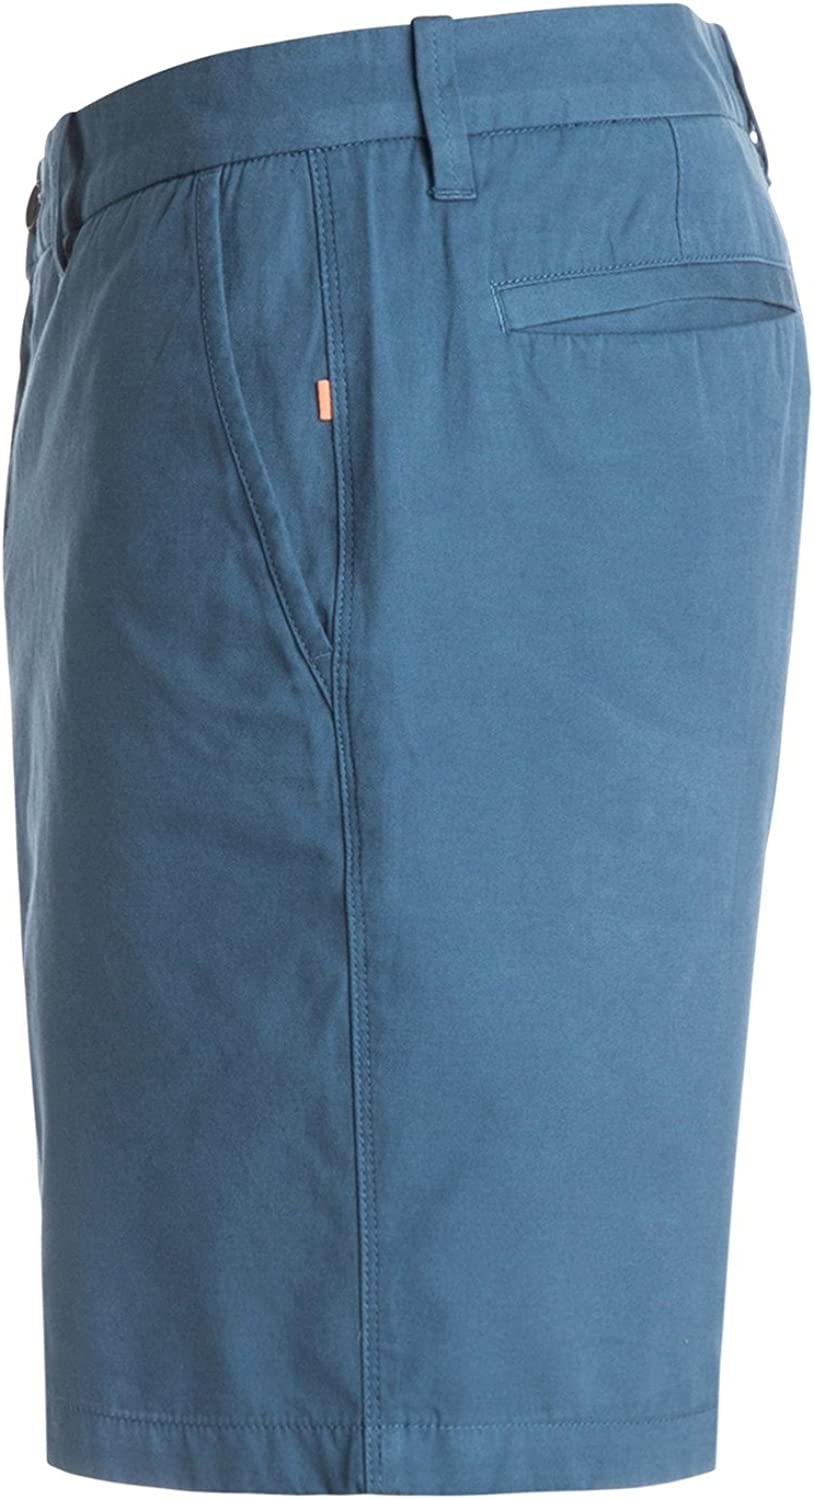 Quiksilver Mens Shortie Chino Short